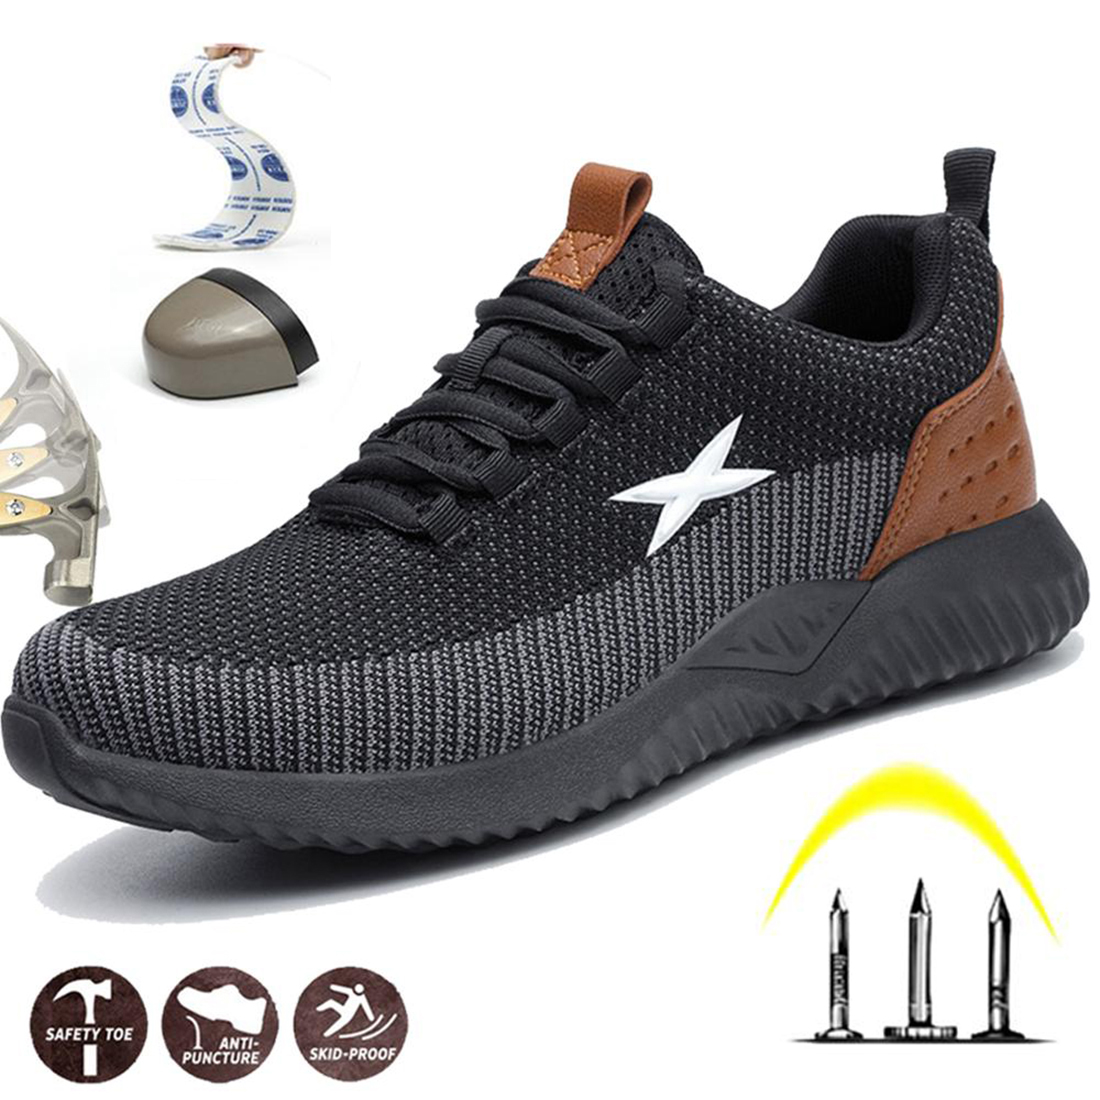 Shoes Boots Steel Toe Cap Casual Work